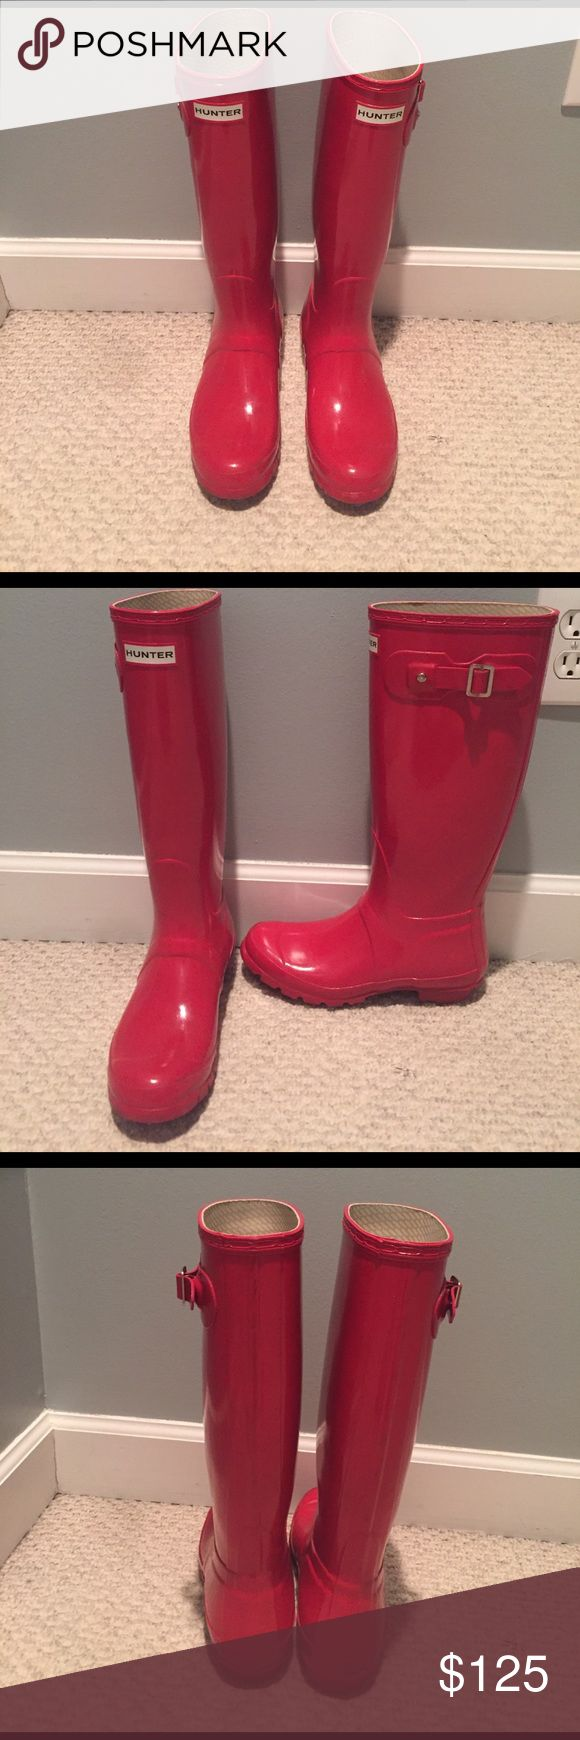 Hunter original tall gloss rain boots These are the women's original tall gloss rain boots in red. Size 7. In great condition. Hunter Boots Shoes Winter & Rain Boots